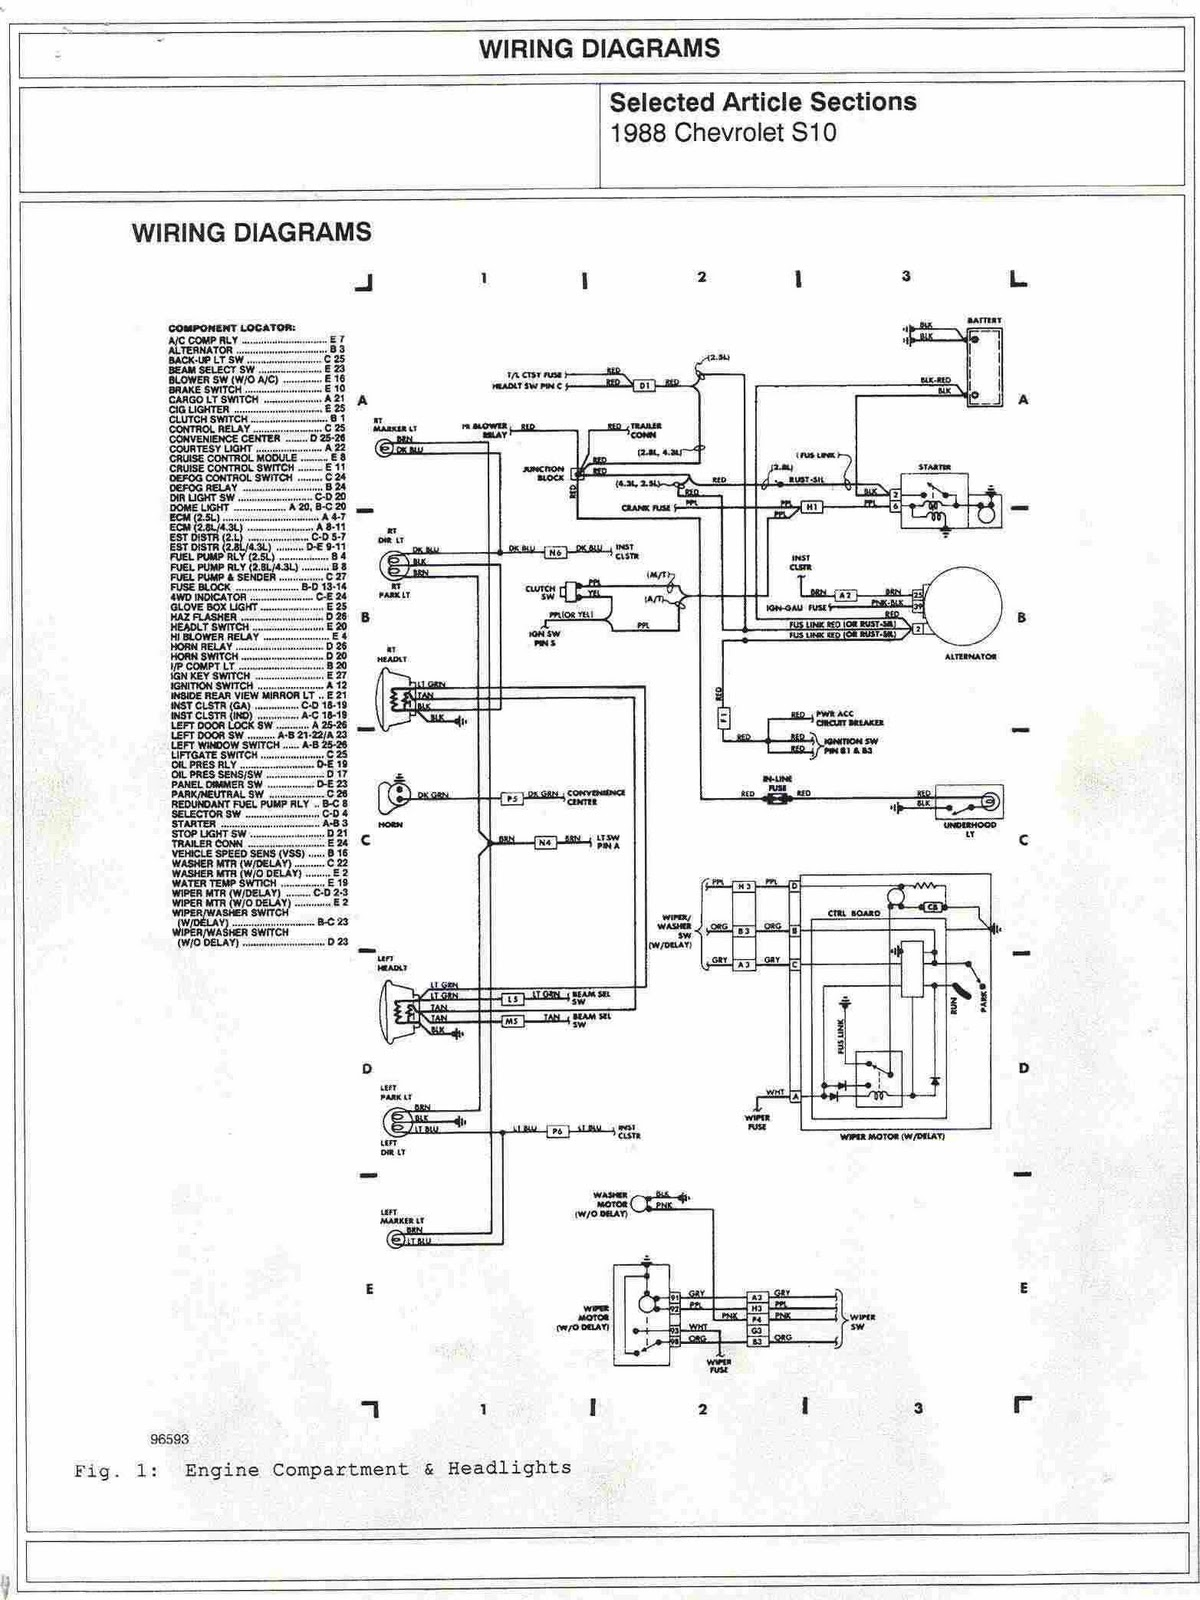 1988+Chevrolet+S10+Engine+Compartment+and+Headlights+Wiring+Diagrams 95 s10 wiring diagram 95 tahoe wiring diagram \u2022 wiring diagrams 1999 Chevy Silverado Wire Diagram at gsmportal.co